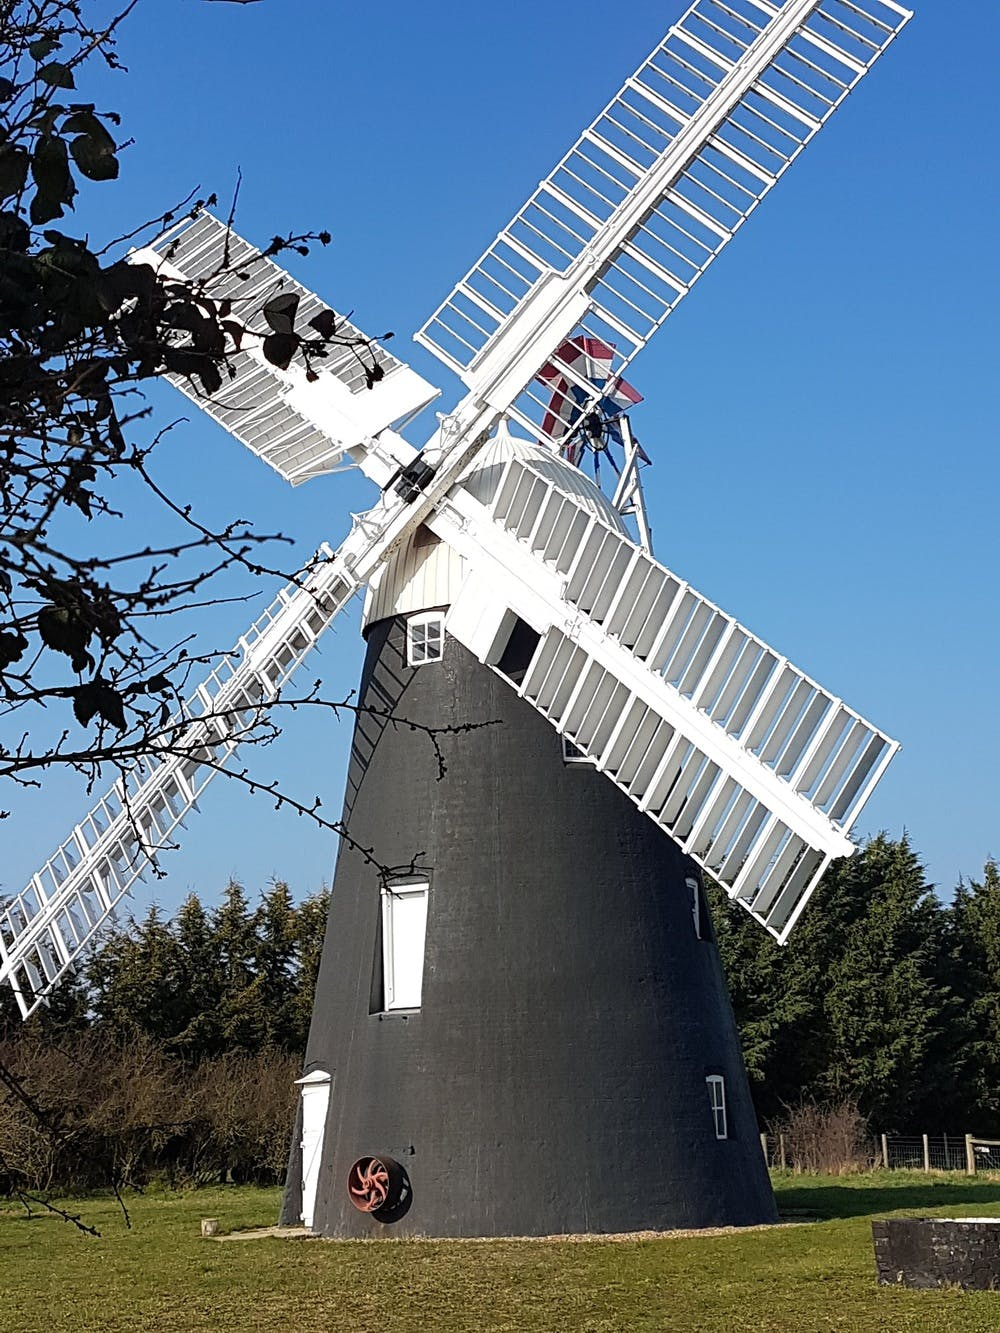 The Windmill in Thelnetham